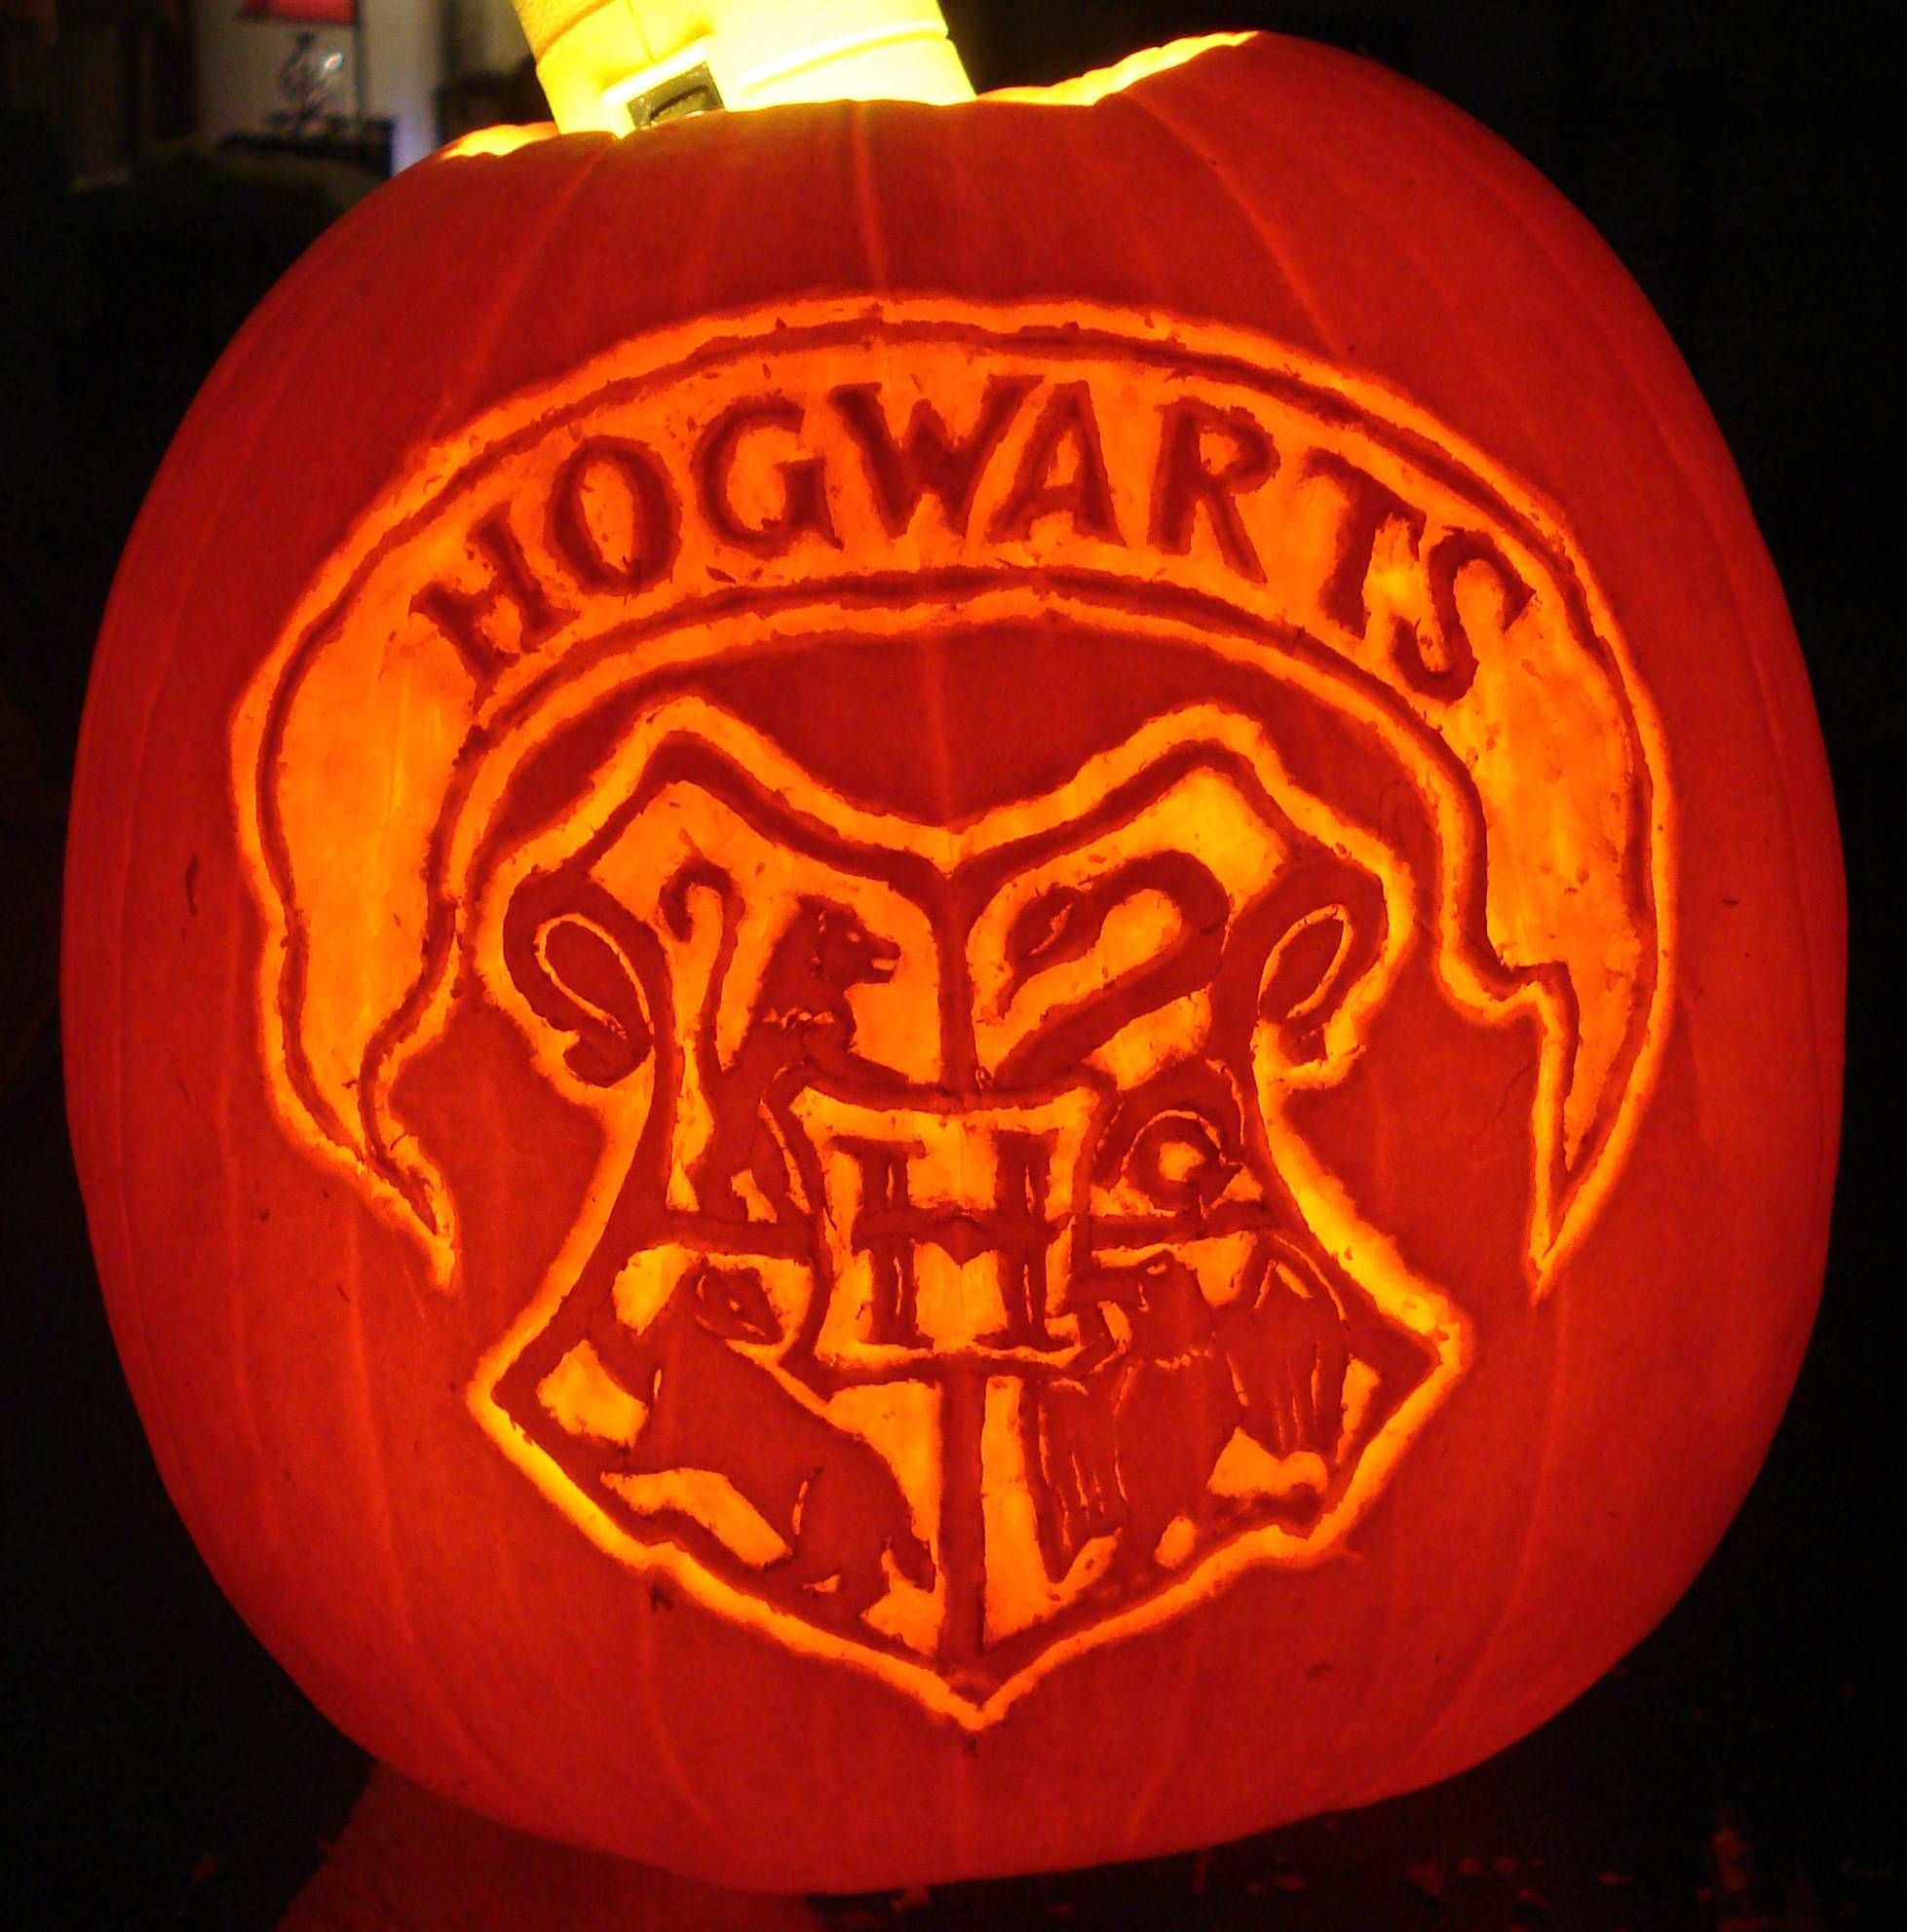 I Solemnly Swear I Am Up To No Good This Halloween Harry Potter Hogwarts Pumpkin Carving I Did In About 90 Minutes Harry Potter Pumpkin Carving Harry Potter Pumpkin Pumpkin Carving